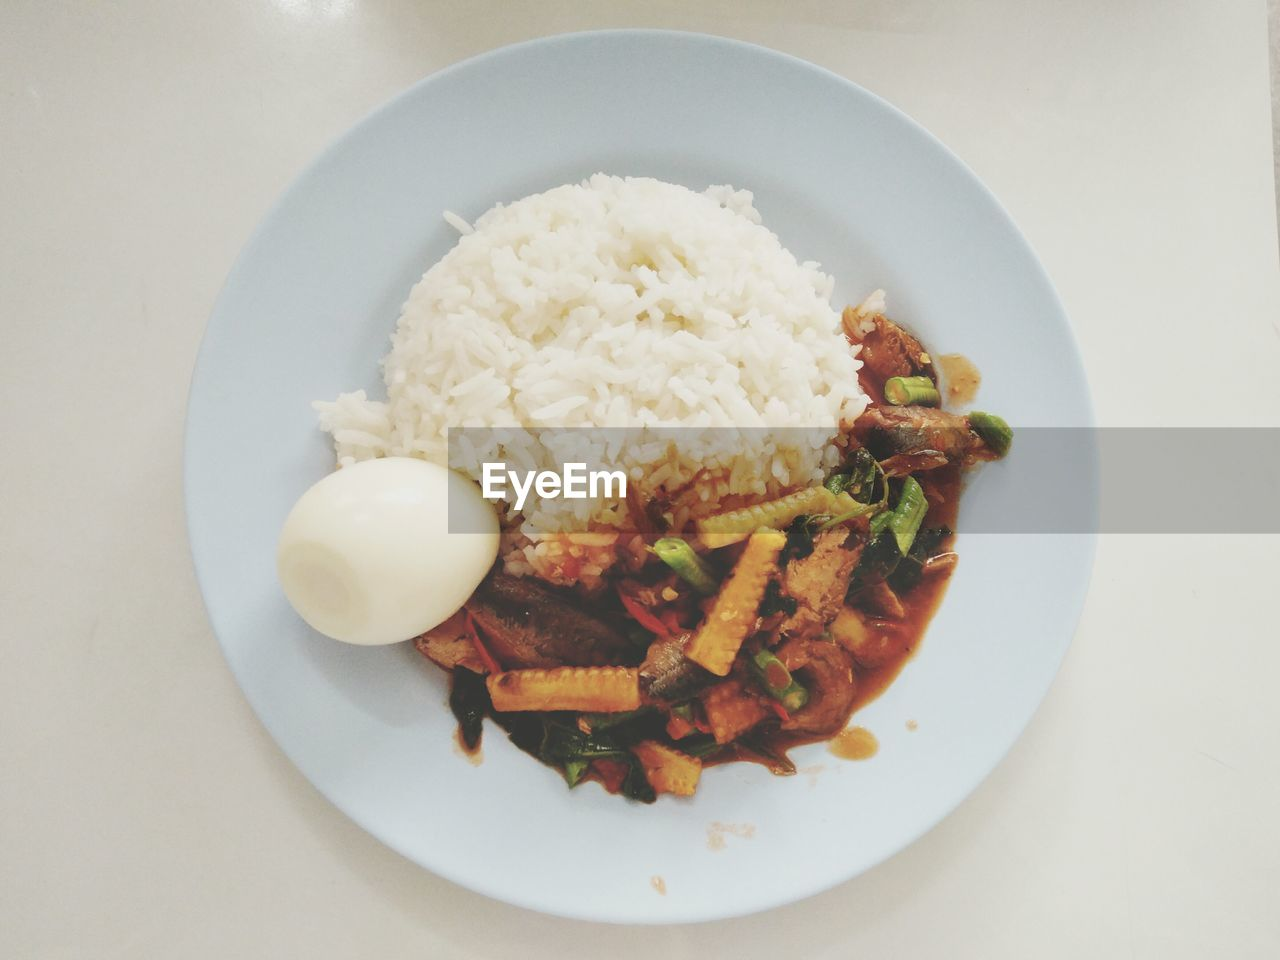 food, ready-to-eat, food and drink, plate, rice - food staple, freshness, healthy eating, meat, wellbeing, serving size, table, meal, still life, vegetable, indoors, rice, no people, cereal plant, high angle view, close-up, dinner, crockery, temptation